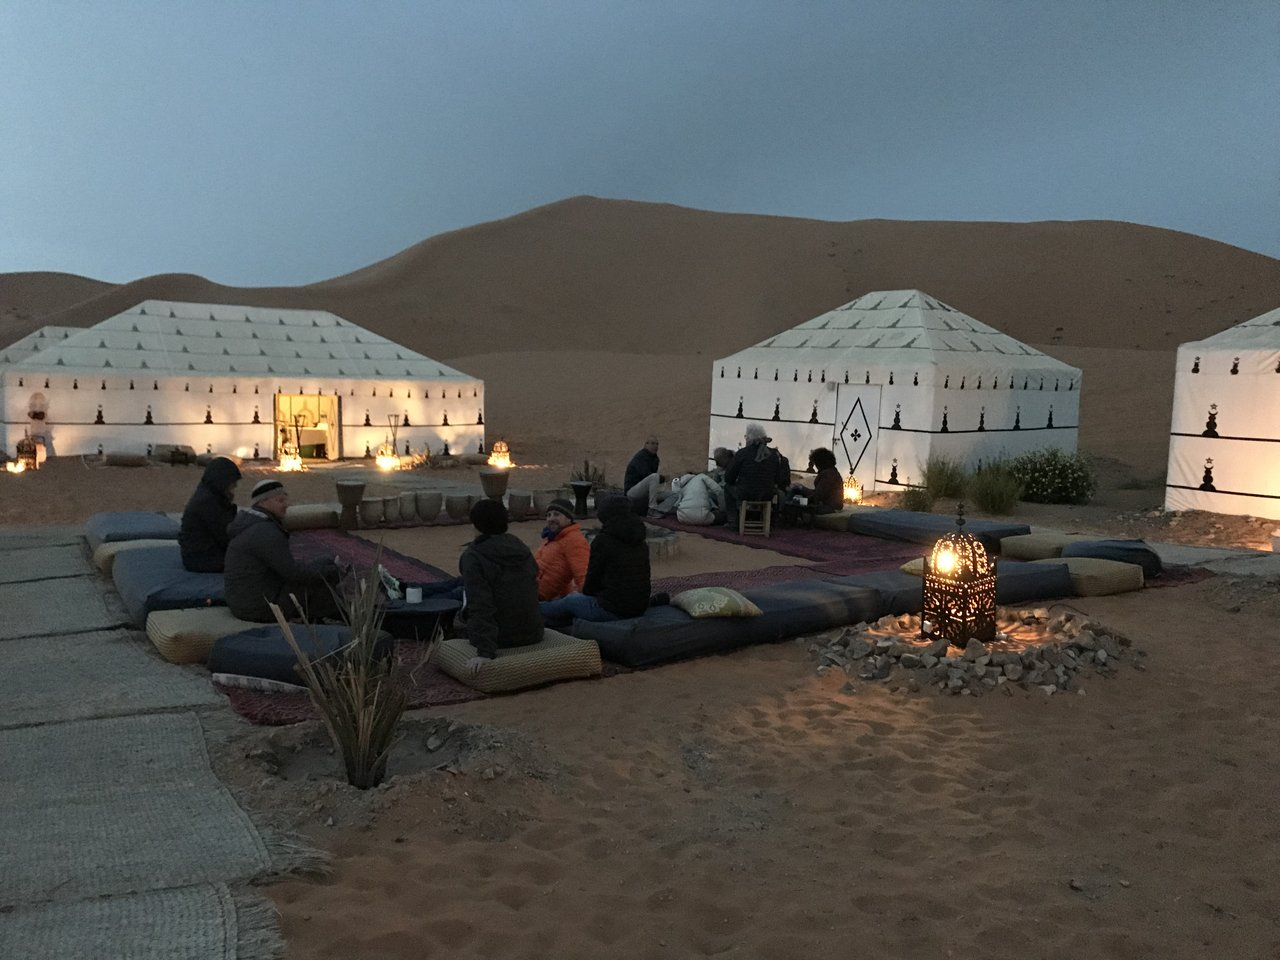 Desert Camp Bouchedor | Photo taken by Chris M